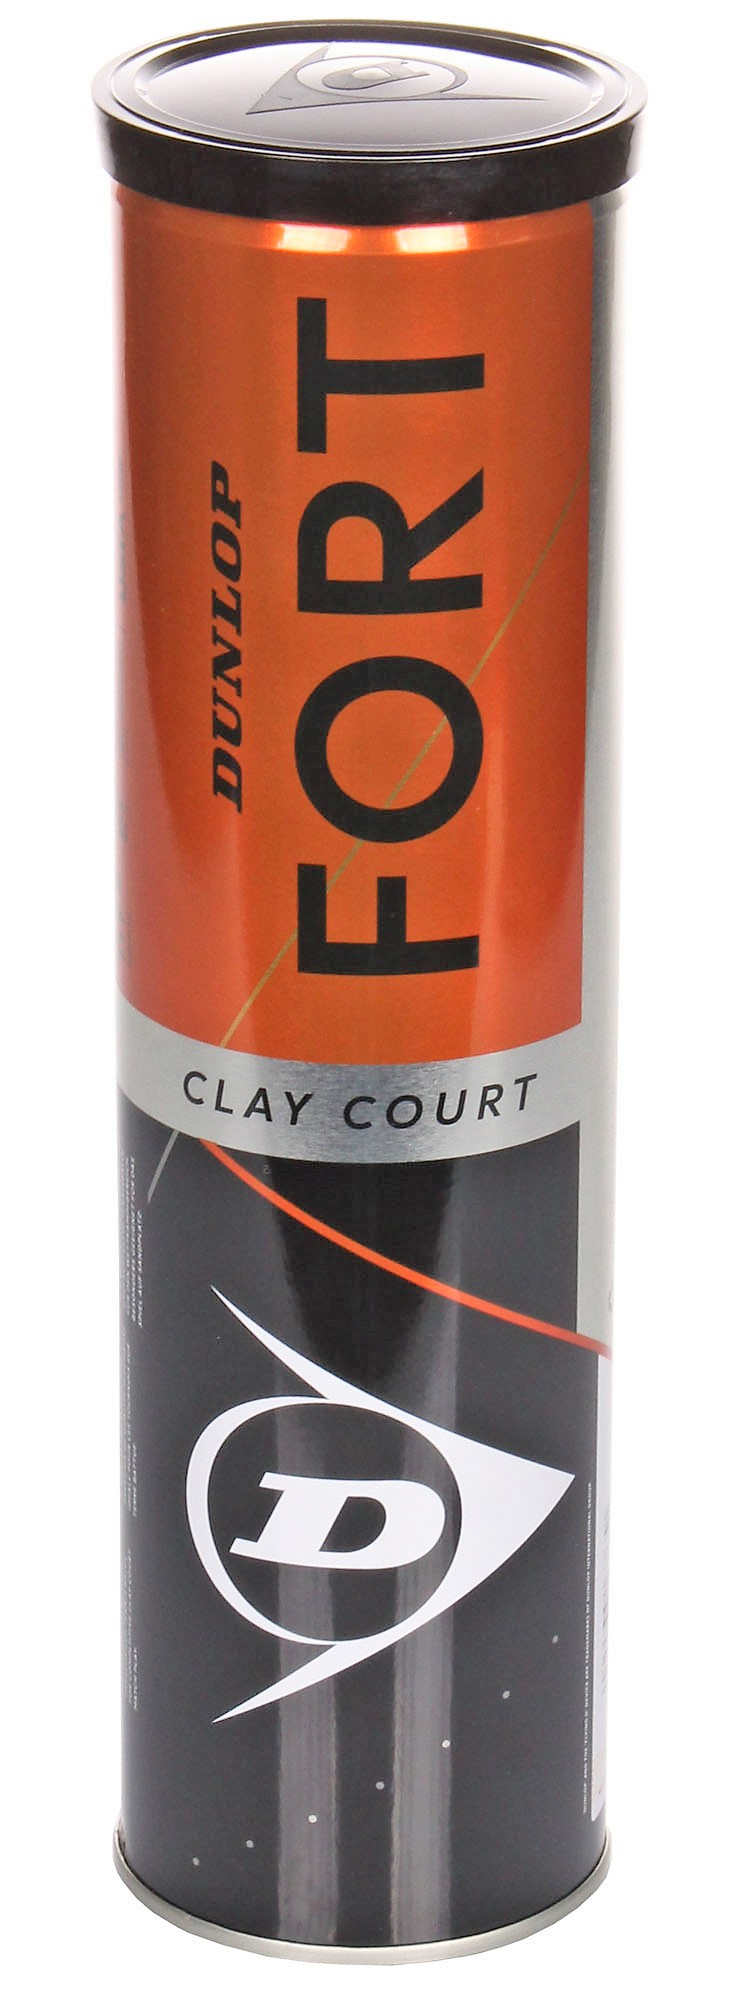 Tenisové míče Dunlop Fort All Clay